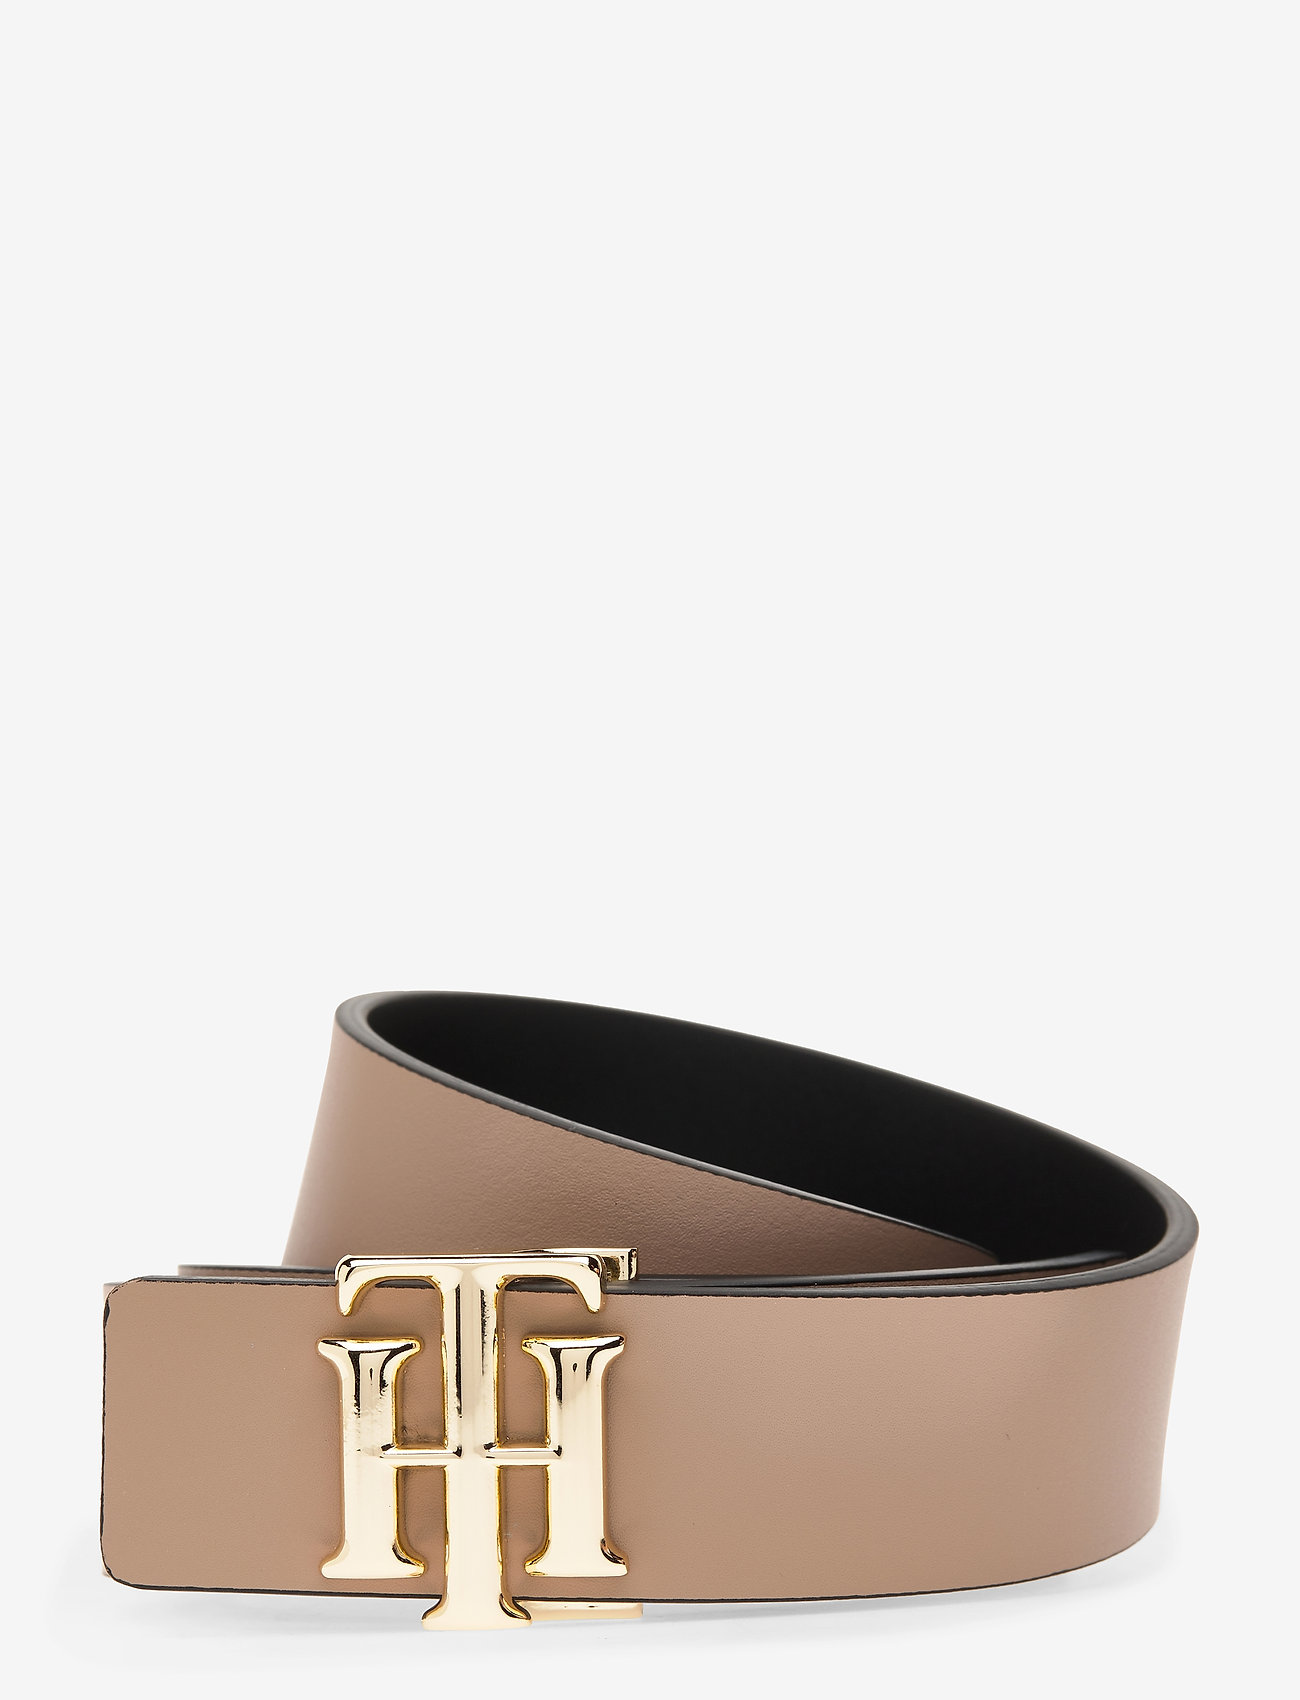 Tommy Hilfiger - TH LOGO REVERSIBLE BELT 3.0 - riemen - black / oakmont - 1